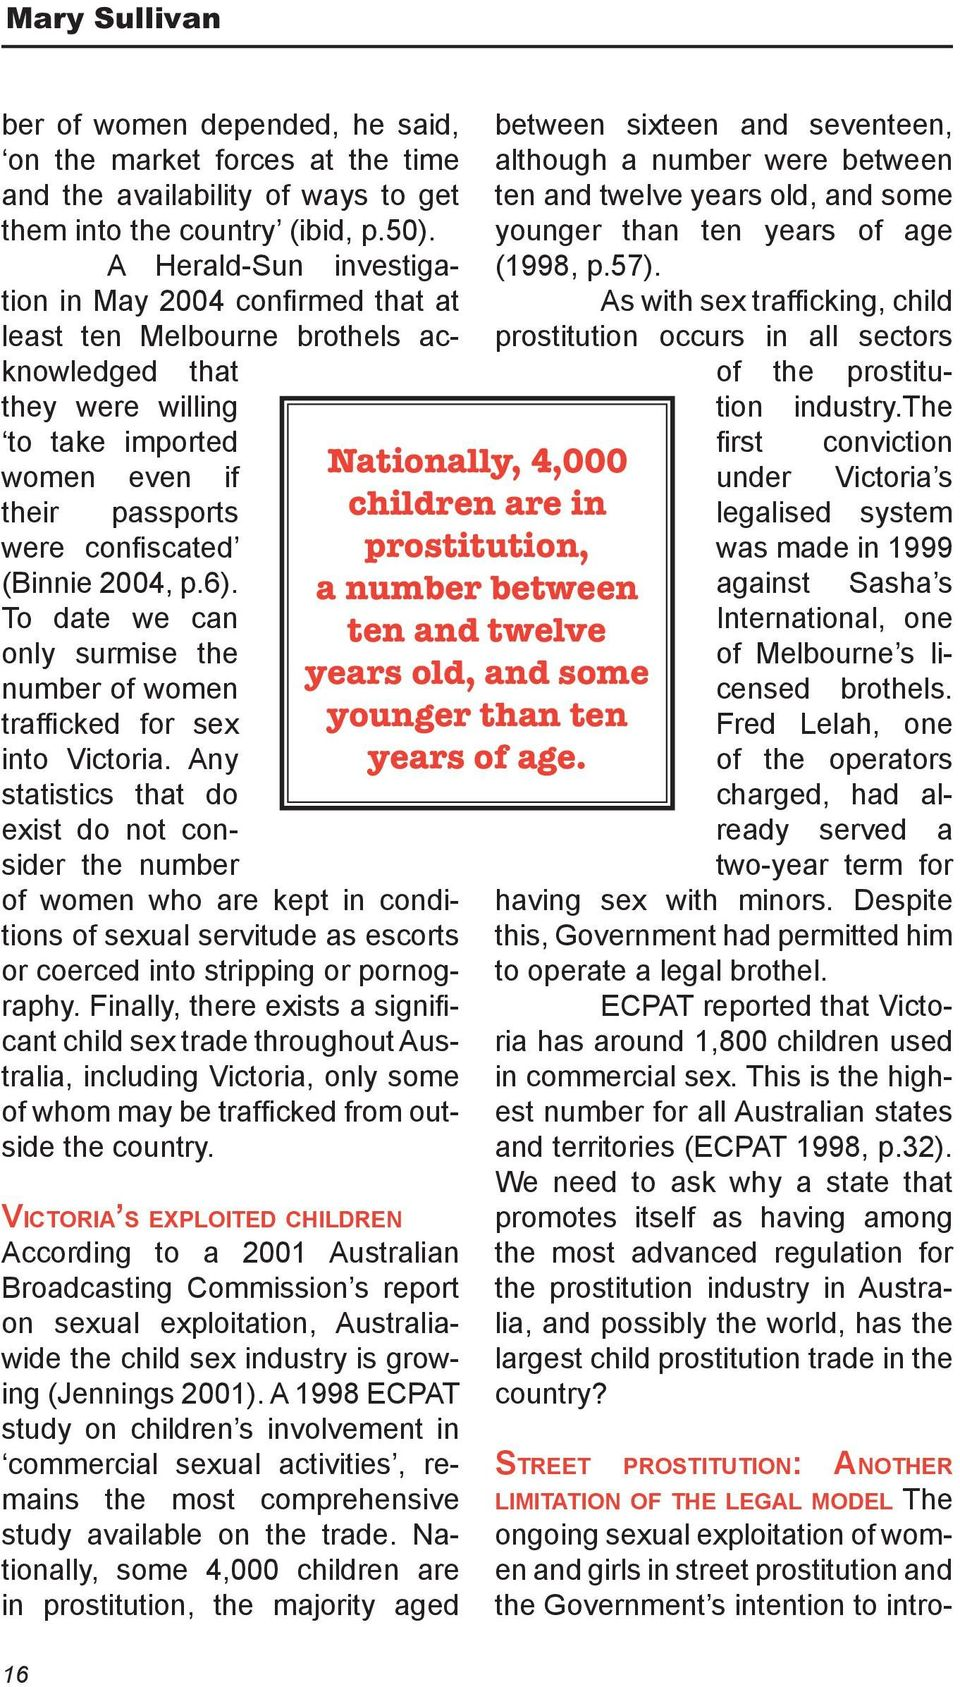 p.6). To date we can only surmise the number of women trafficked for sex into Victoria.